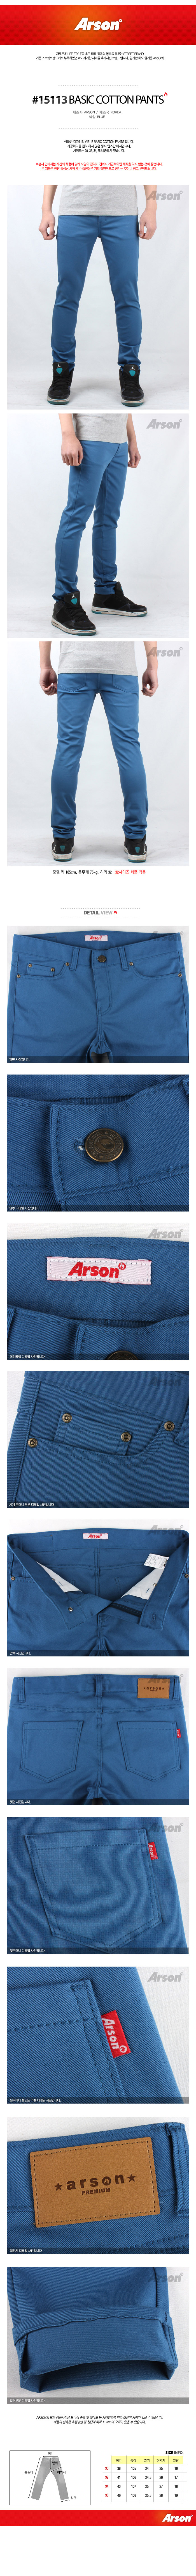 [ ARSON ] [Arson] ARSON GENUINE/15113 BASIC COTTON PANTS (BLUE)/men\'s cotton pants/cotton pants/ARSON cotton pants